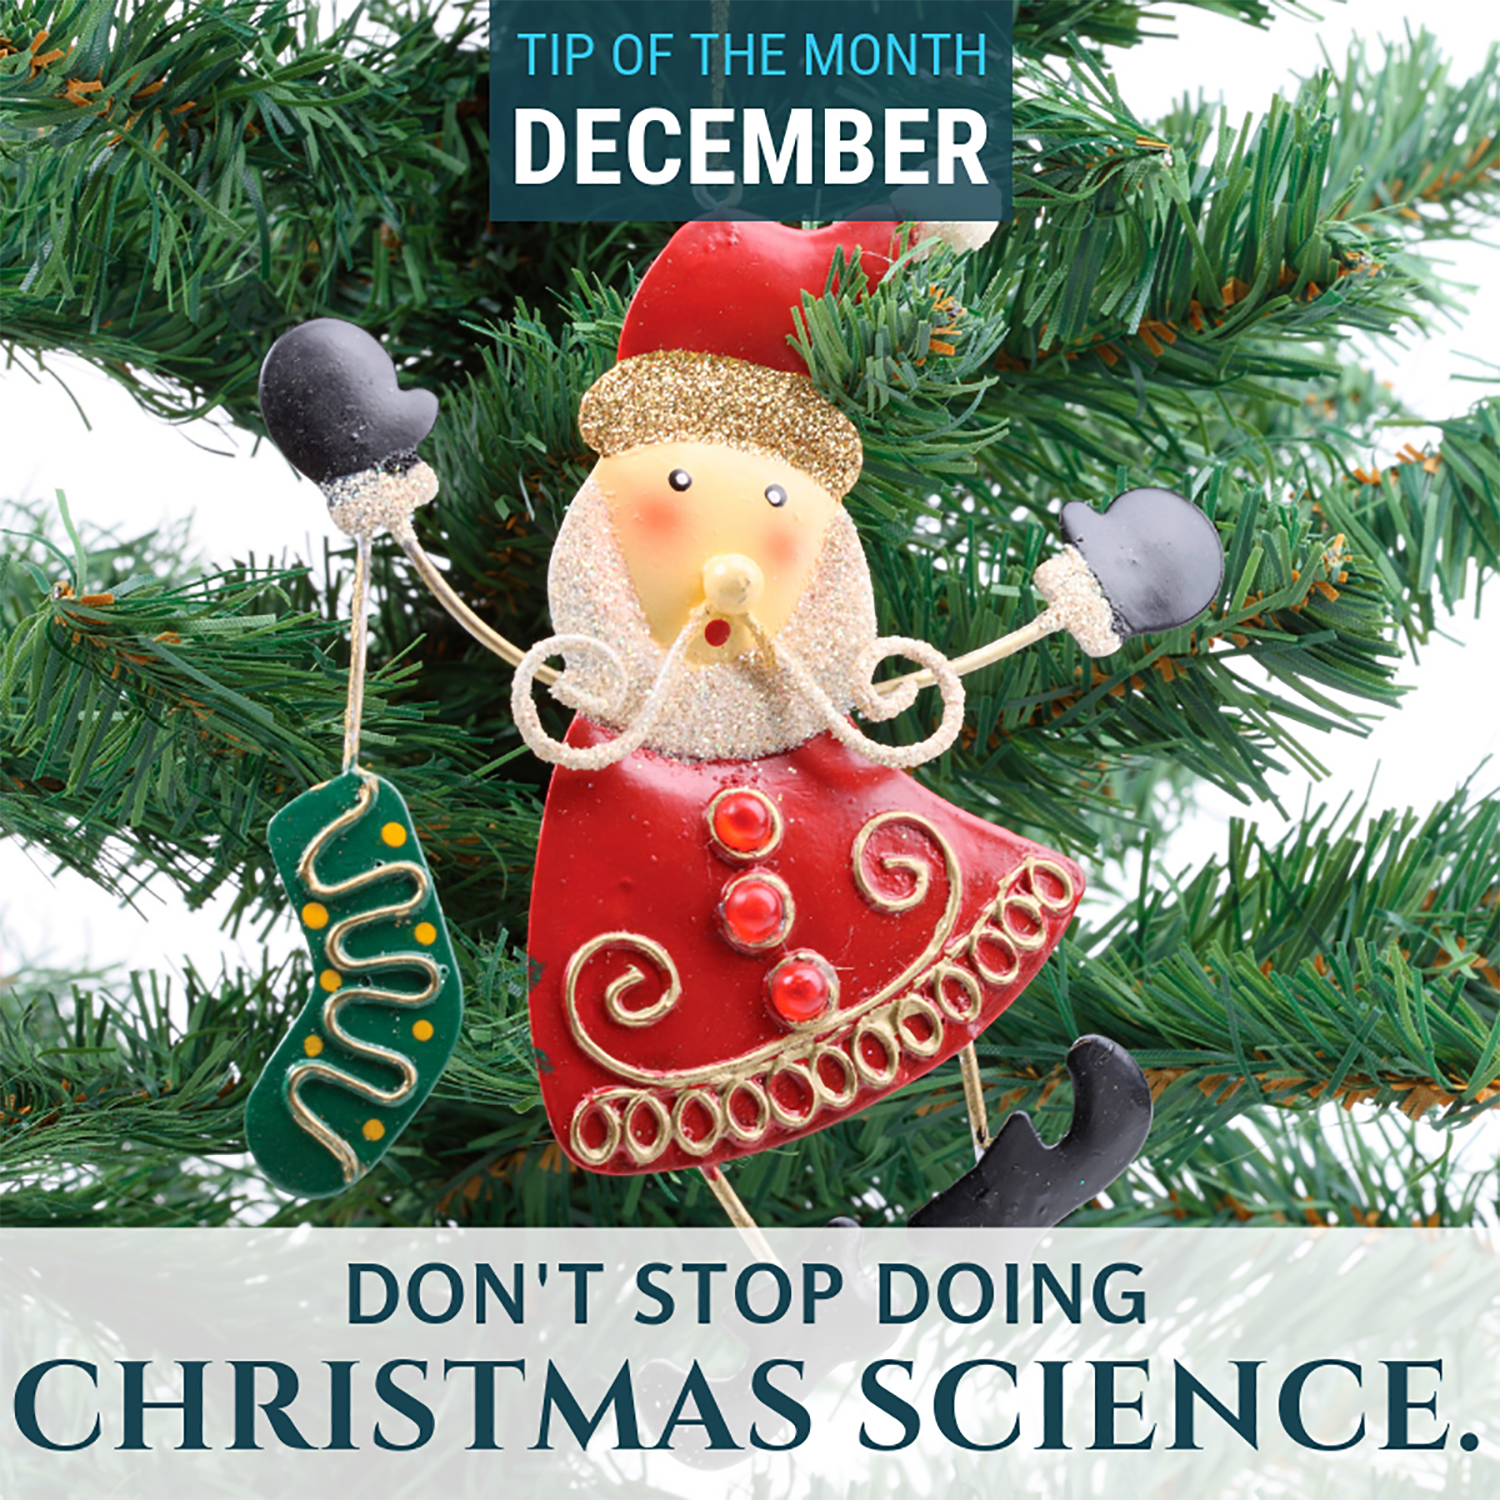 Christmas Science Homeschool Science Tip Of The Month